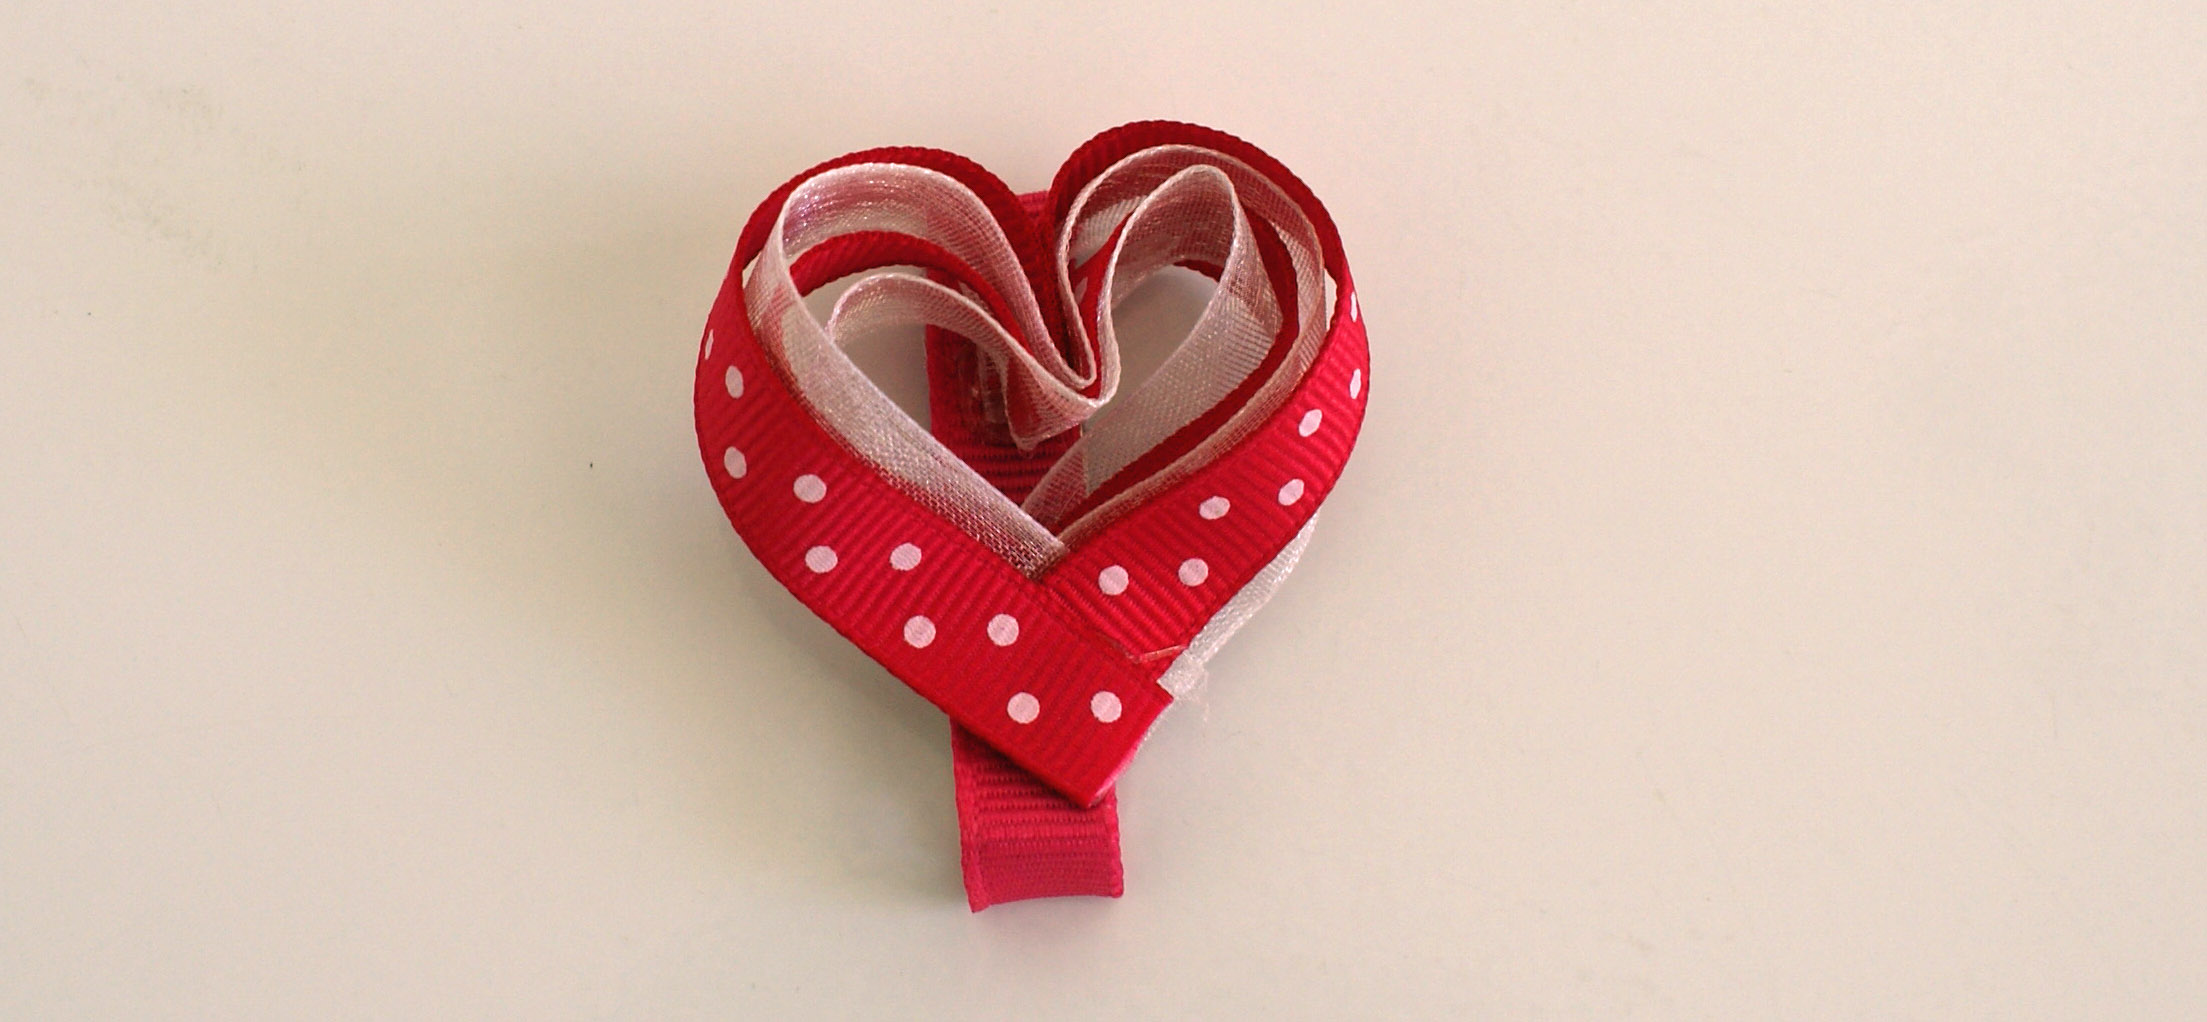 It's just a picture of Refreshing Hearts With Bows